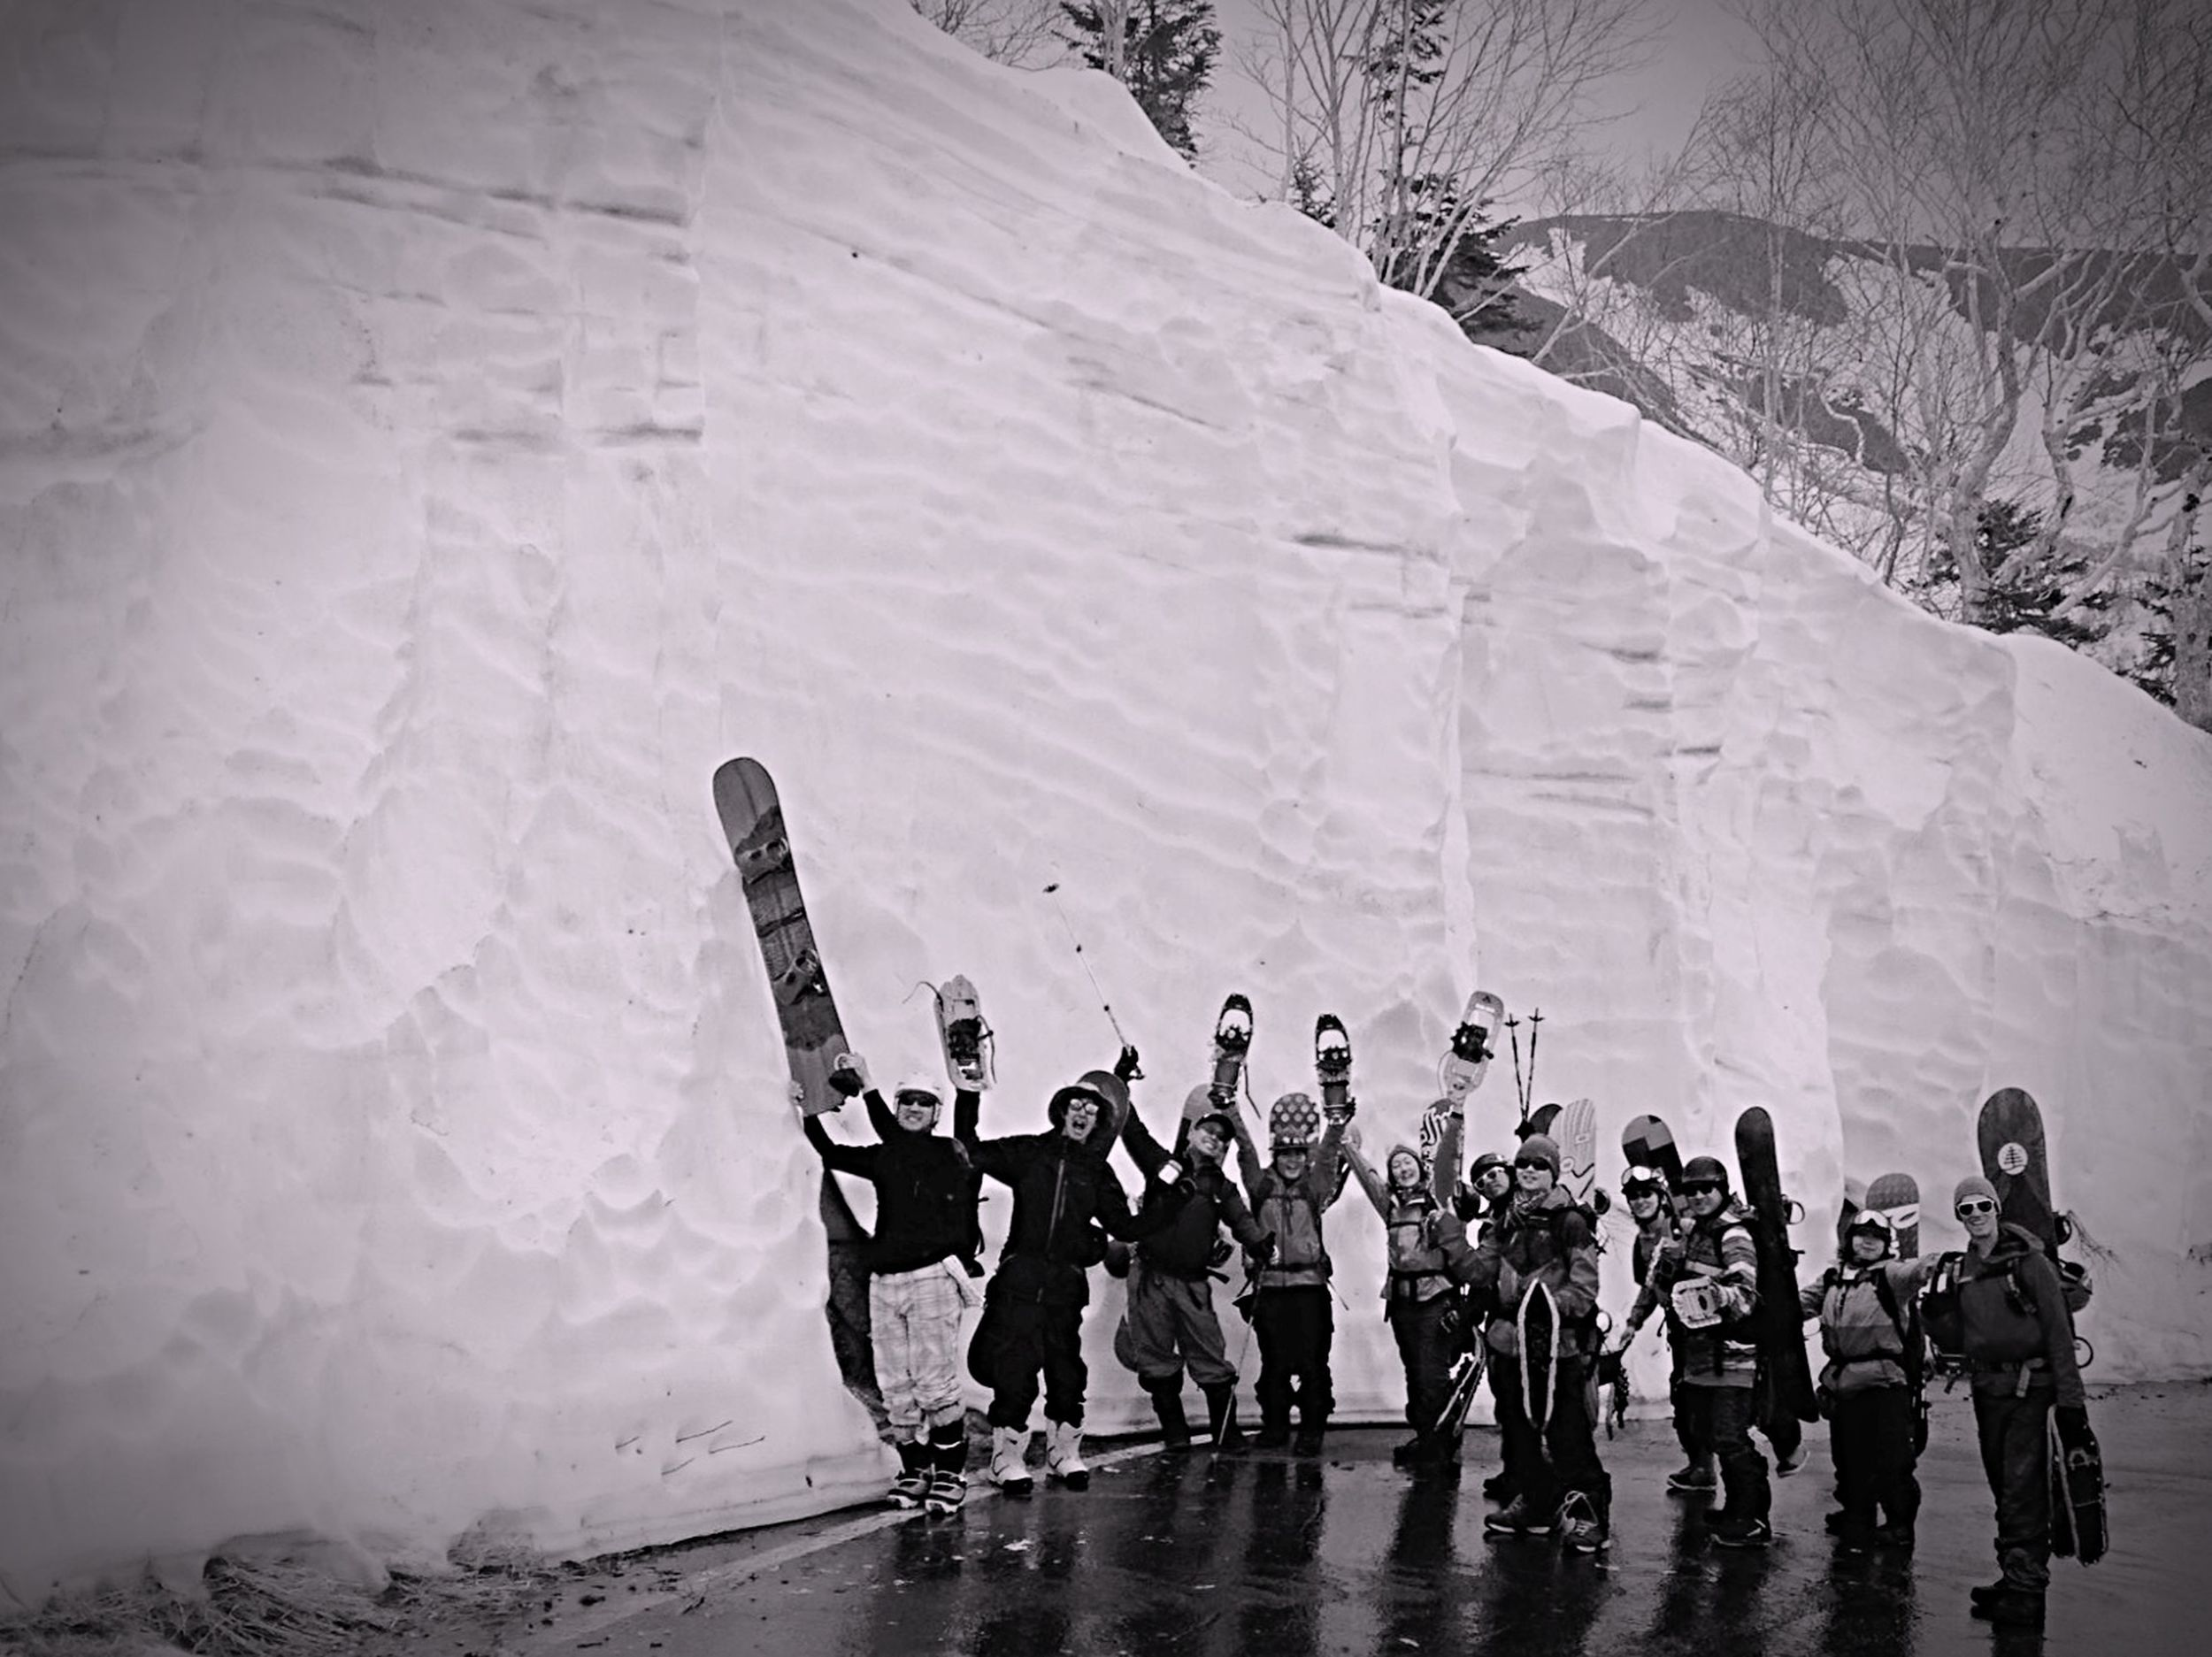 Snow Wall Backcountry Snowboarding Snow Shoe Hike Up